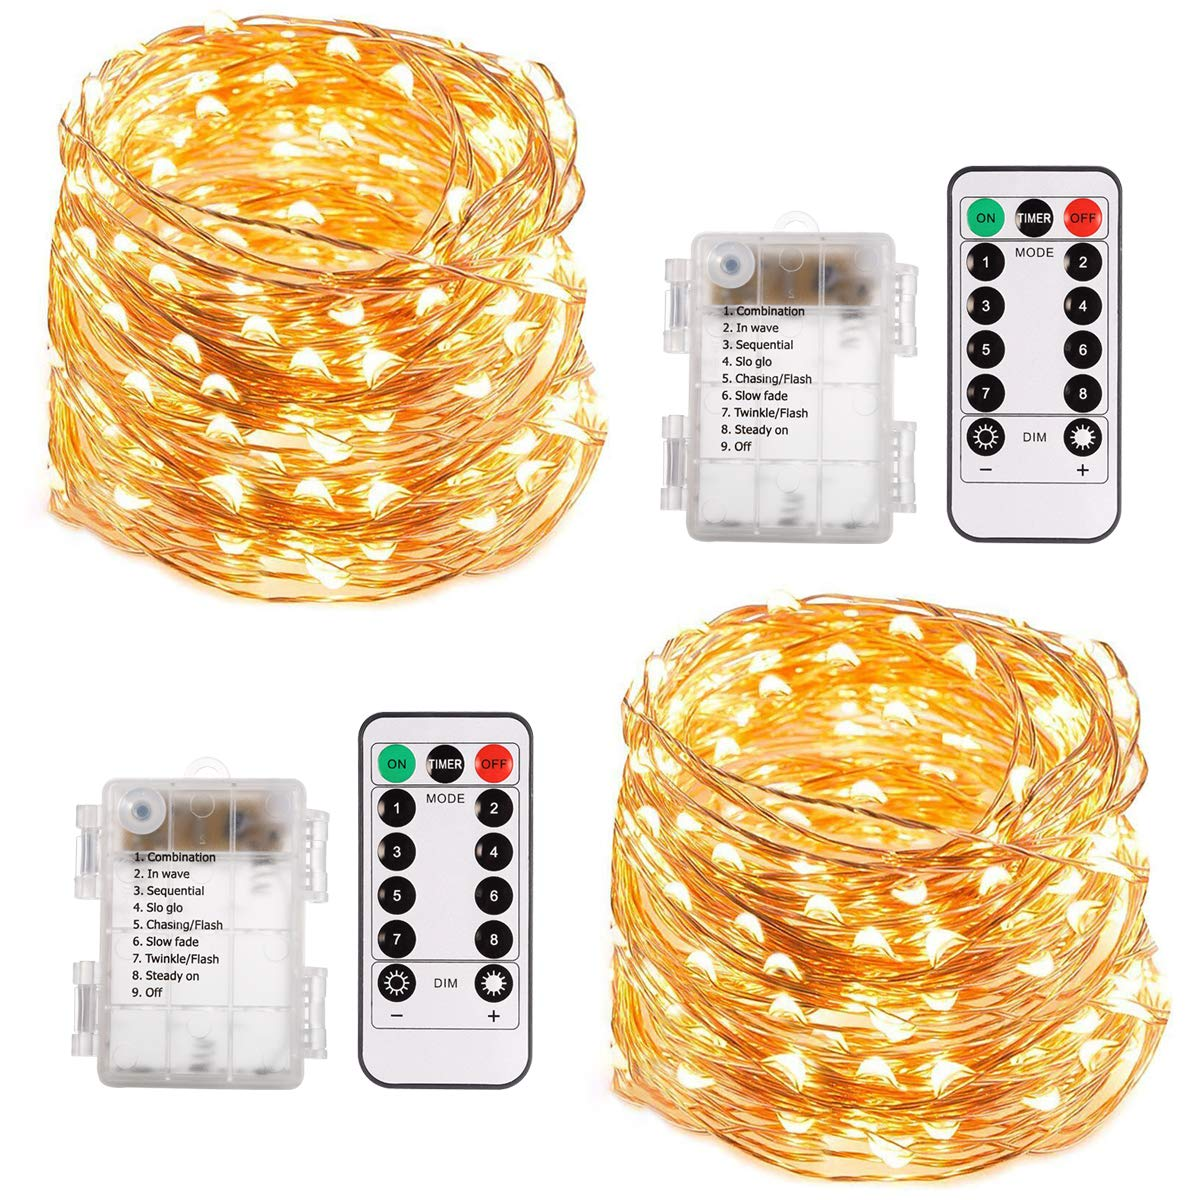 ECOWHO String Lights, 66ft 200 LED Battery Powered Fairy Lights, 8 Lighting Modes, Decorative Warm White Lights for Bedroom, Patio, Garden, Wedding (2 Pack)